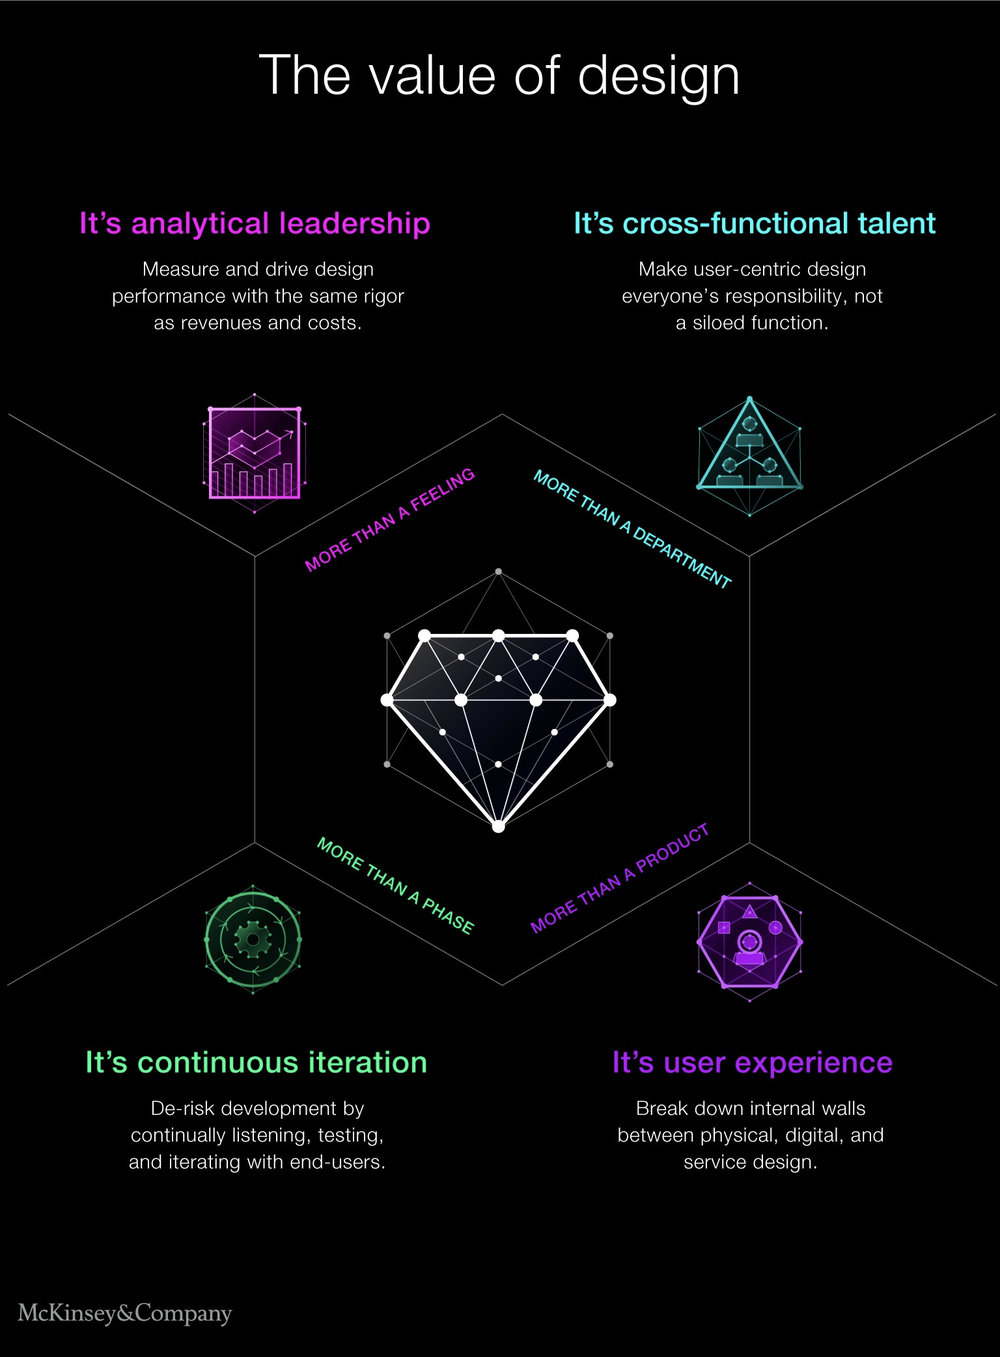 The four themes that make up the McKinsey Design Index (MDI) - More than a feeling: Analytical LeadershipMore than a department: Cross-functional TalentMore than a phase: Continuous IterationMore than a product: User Experience